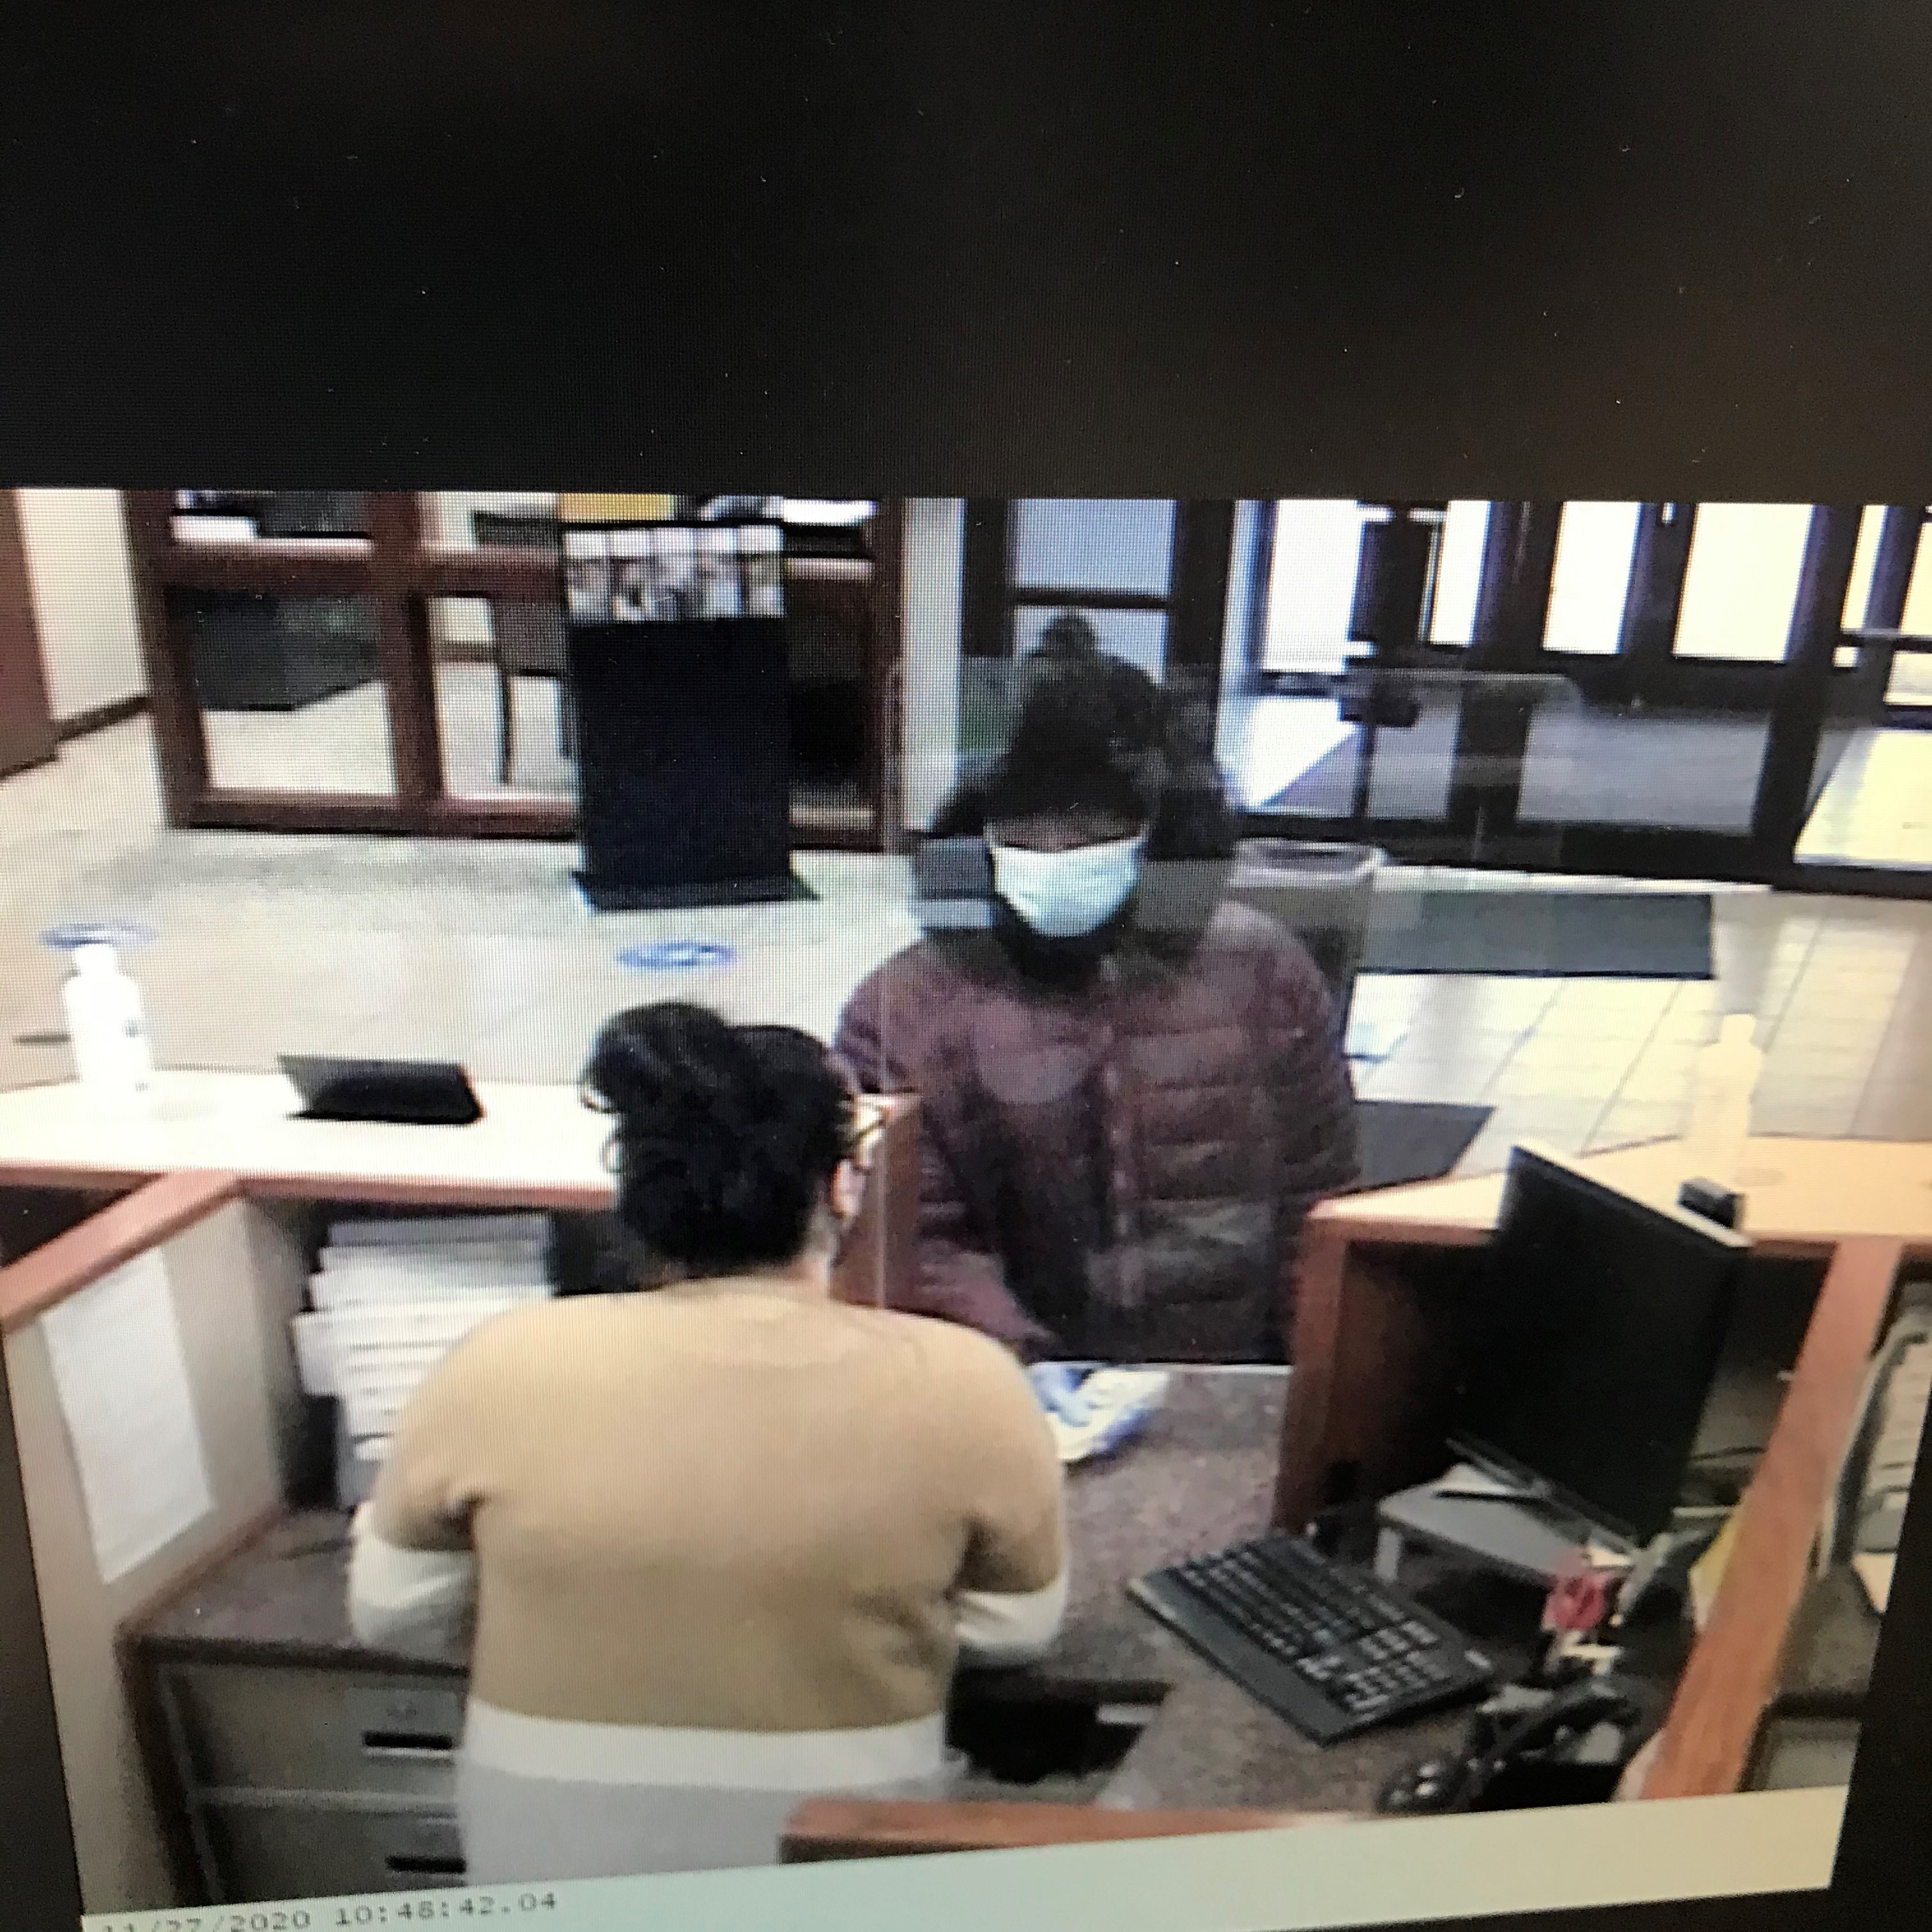 TCF Bank Robbery - Gaines Township